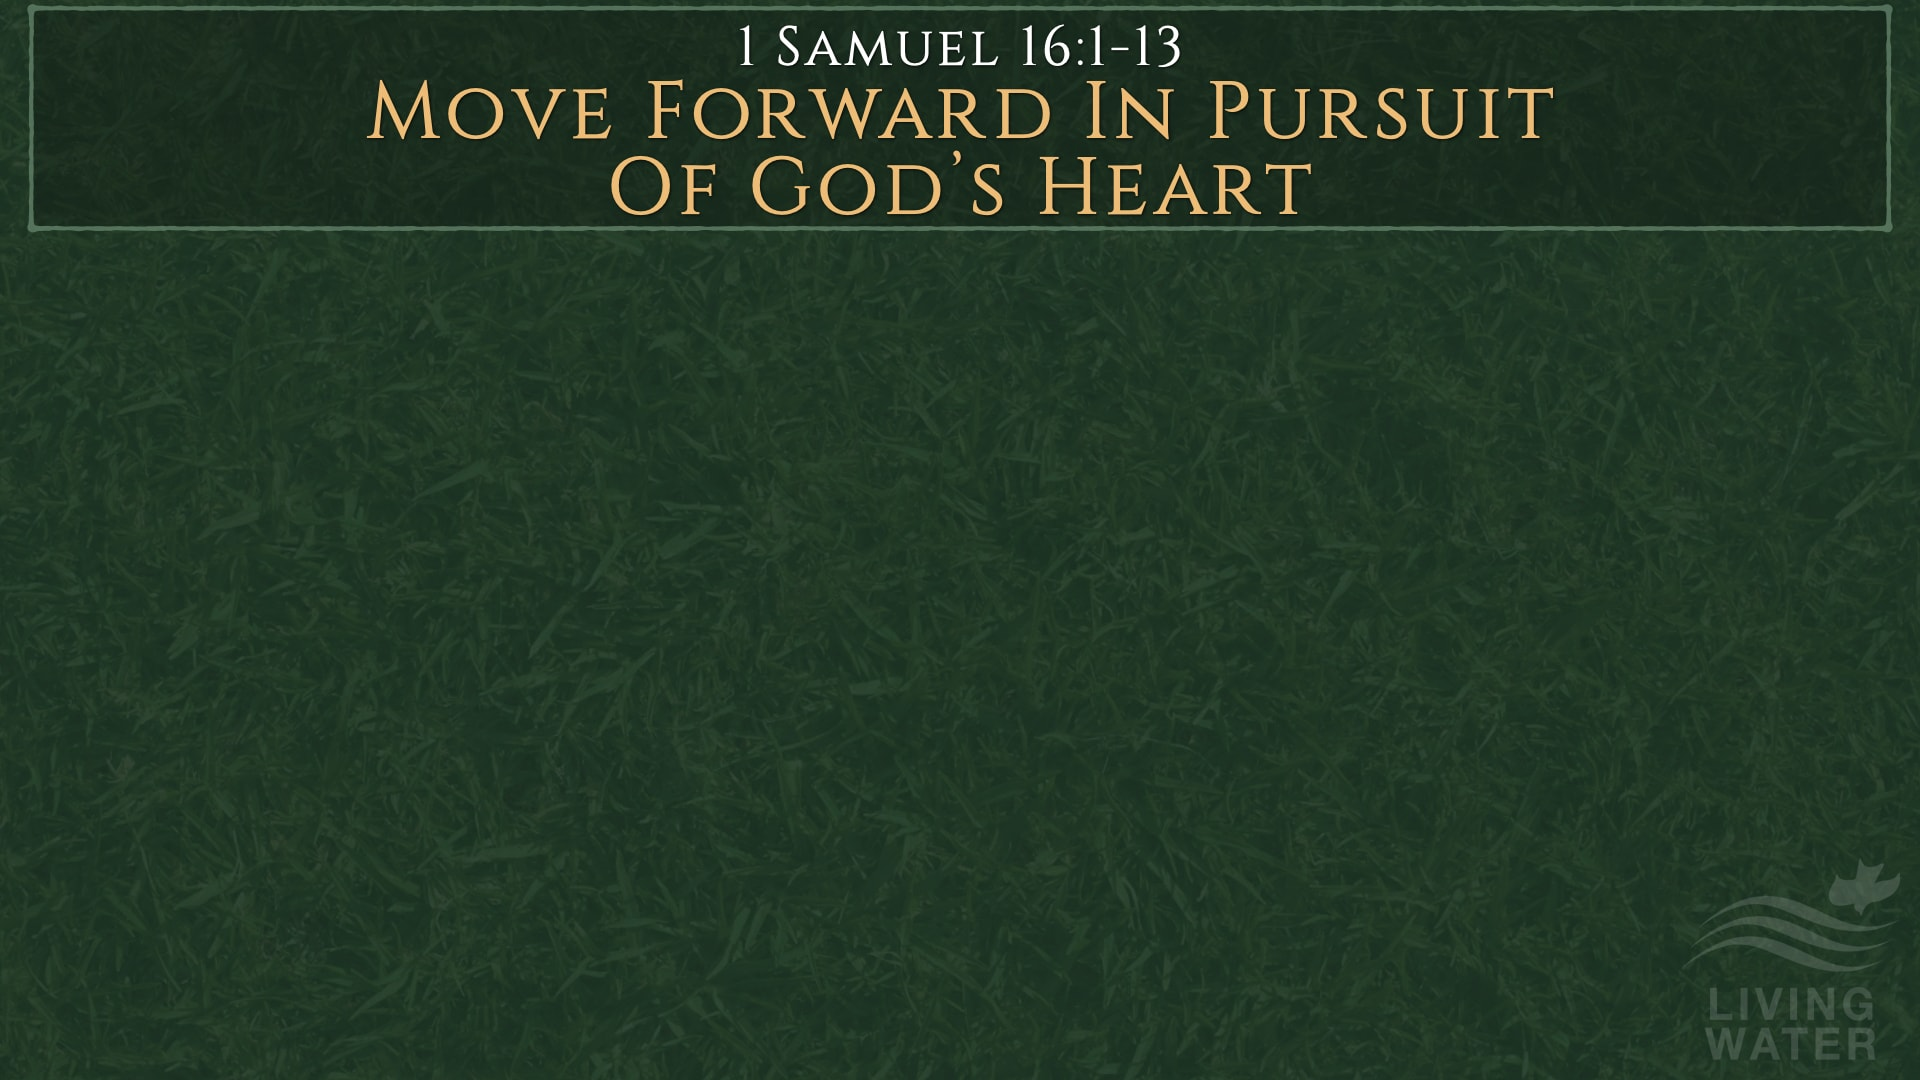 1 Samuel 16:1-13, Move Forward In Pursuit Of God's Heart